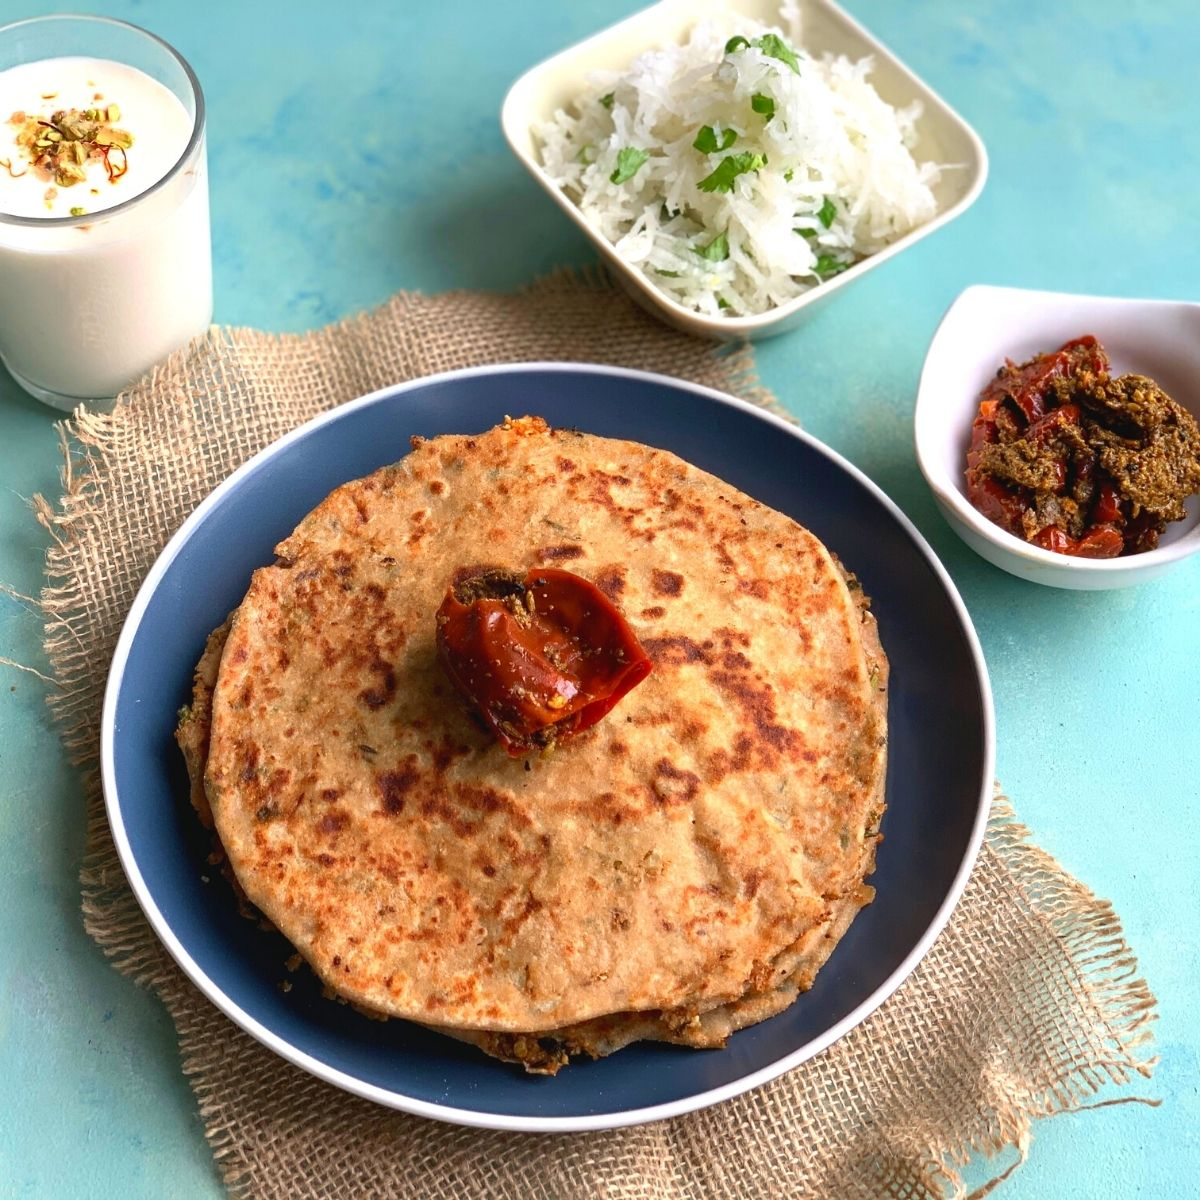 Gobi Paratha is a healthy breakfast and lunch box recipe where the flatbread is stuffed with gobi i.e. cauliflower and a few spices. The Breakfast thali is served with paratha, mooli salad, pickle and yogurt lassi